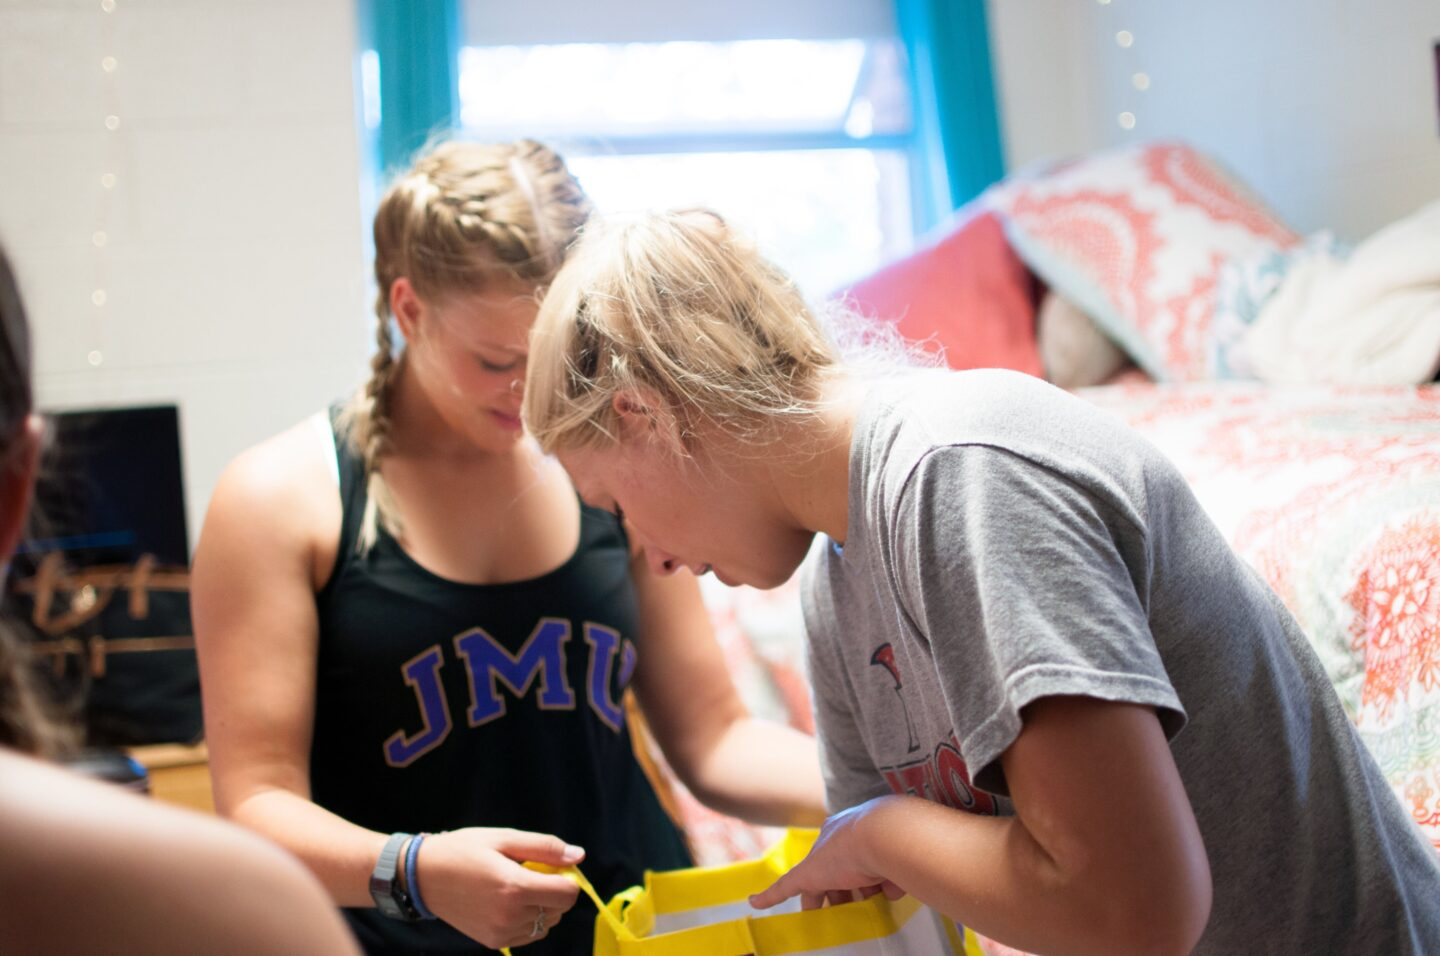 Two roommates in a college dorm organizing their bedroom and getting along